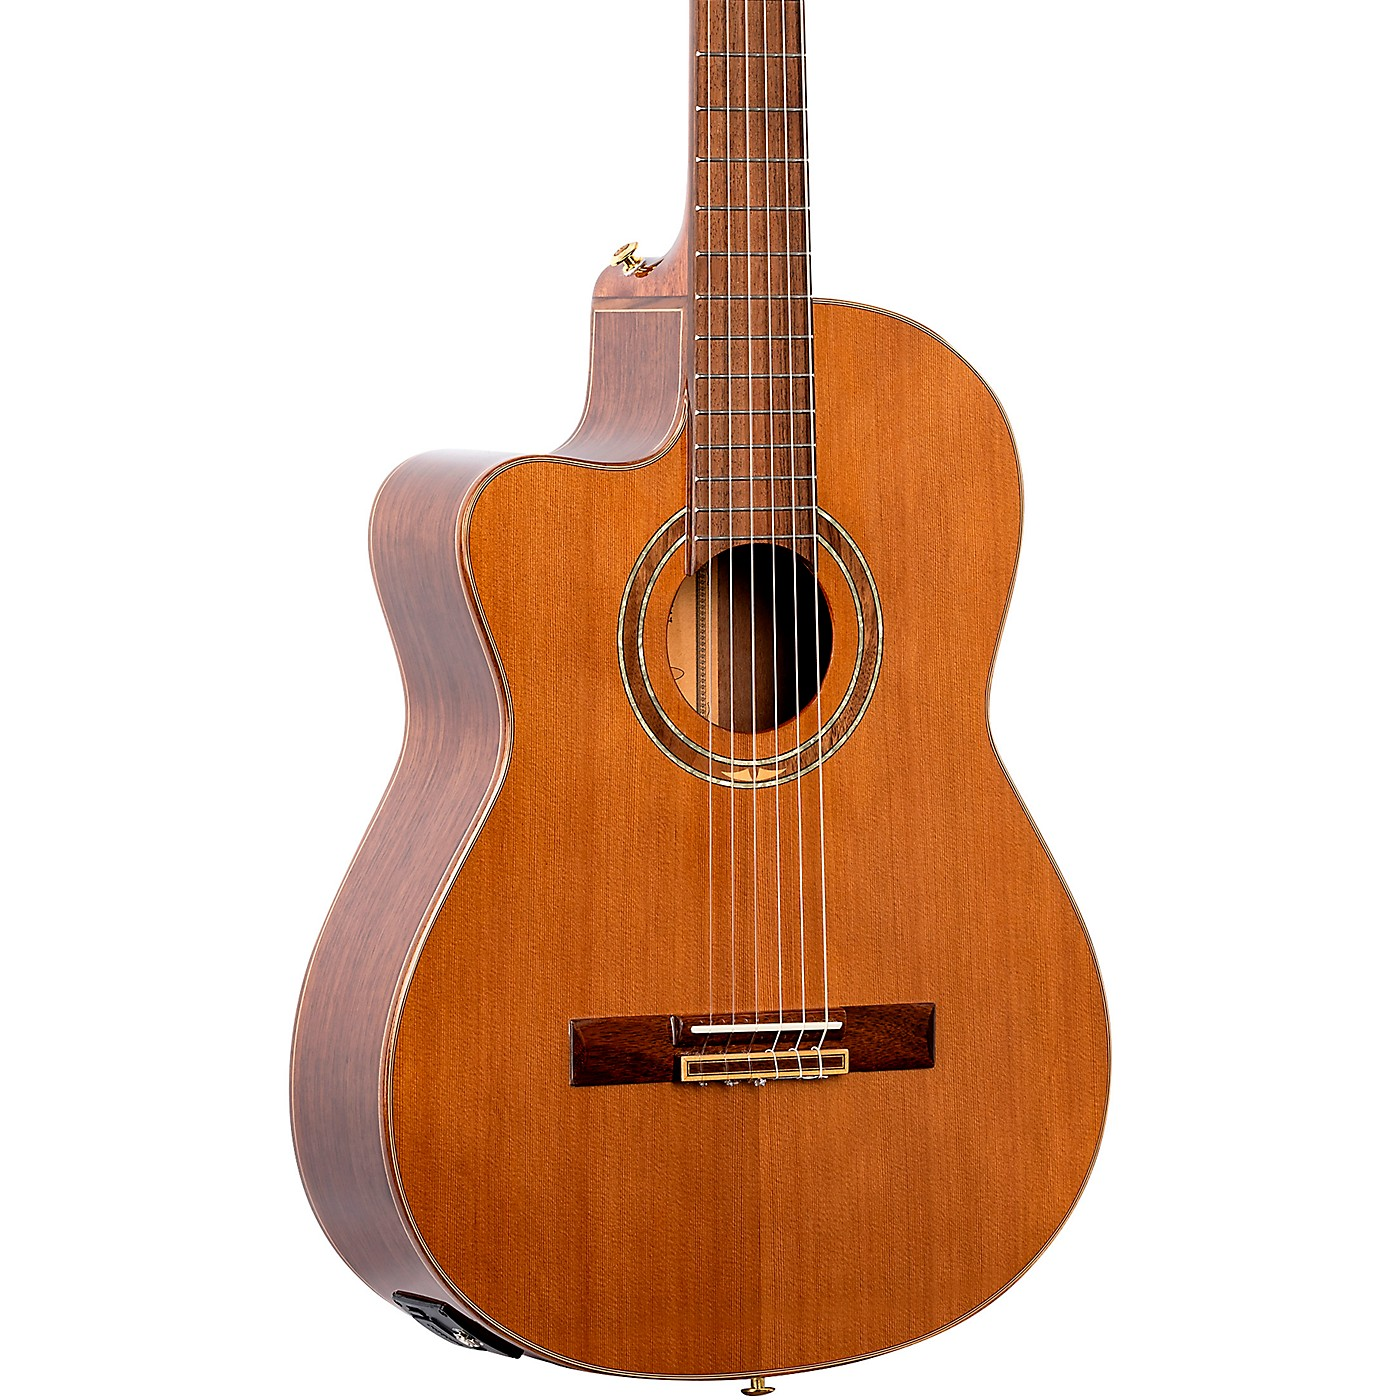 Ortega Performer Series RCE159MN-L Acoustic Electric Left-Handed Classical Guitar thumbnail